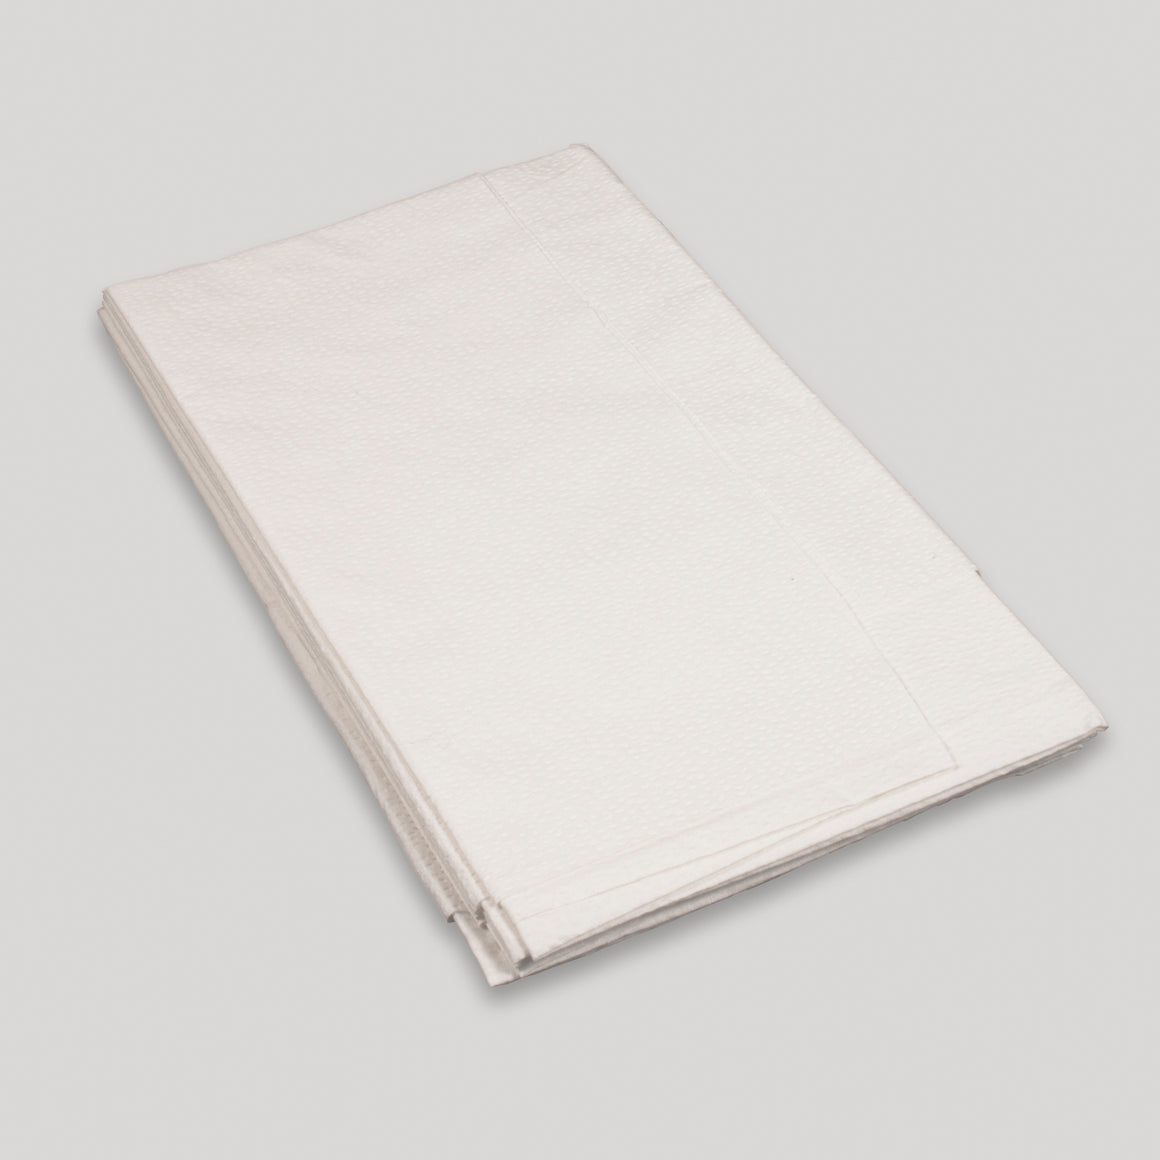 Dynarex #8121 Exam Drape Sheets 40×48 – 100 per case - fhmedicalservices